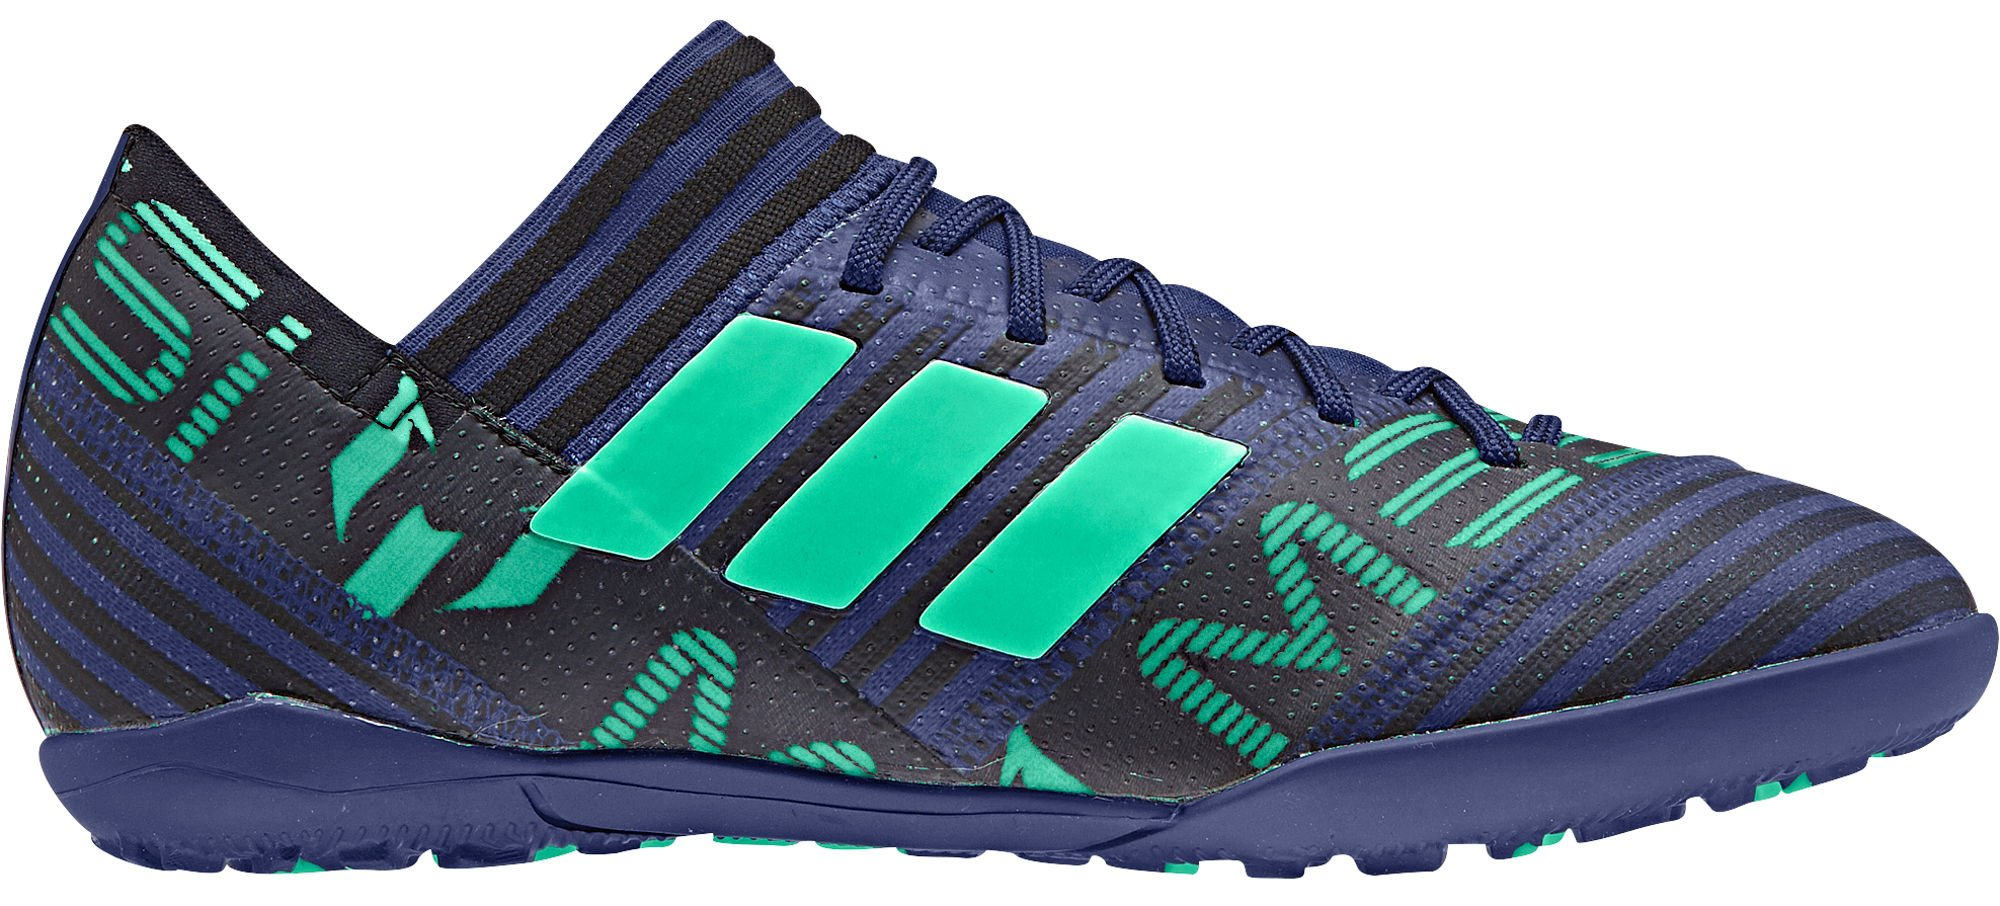 Faringe Óptima Decremento  Football shoes adidas NEMEZIZ MESSI TANGO 17.3 TF J - Top4Football.com